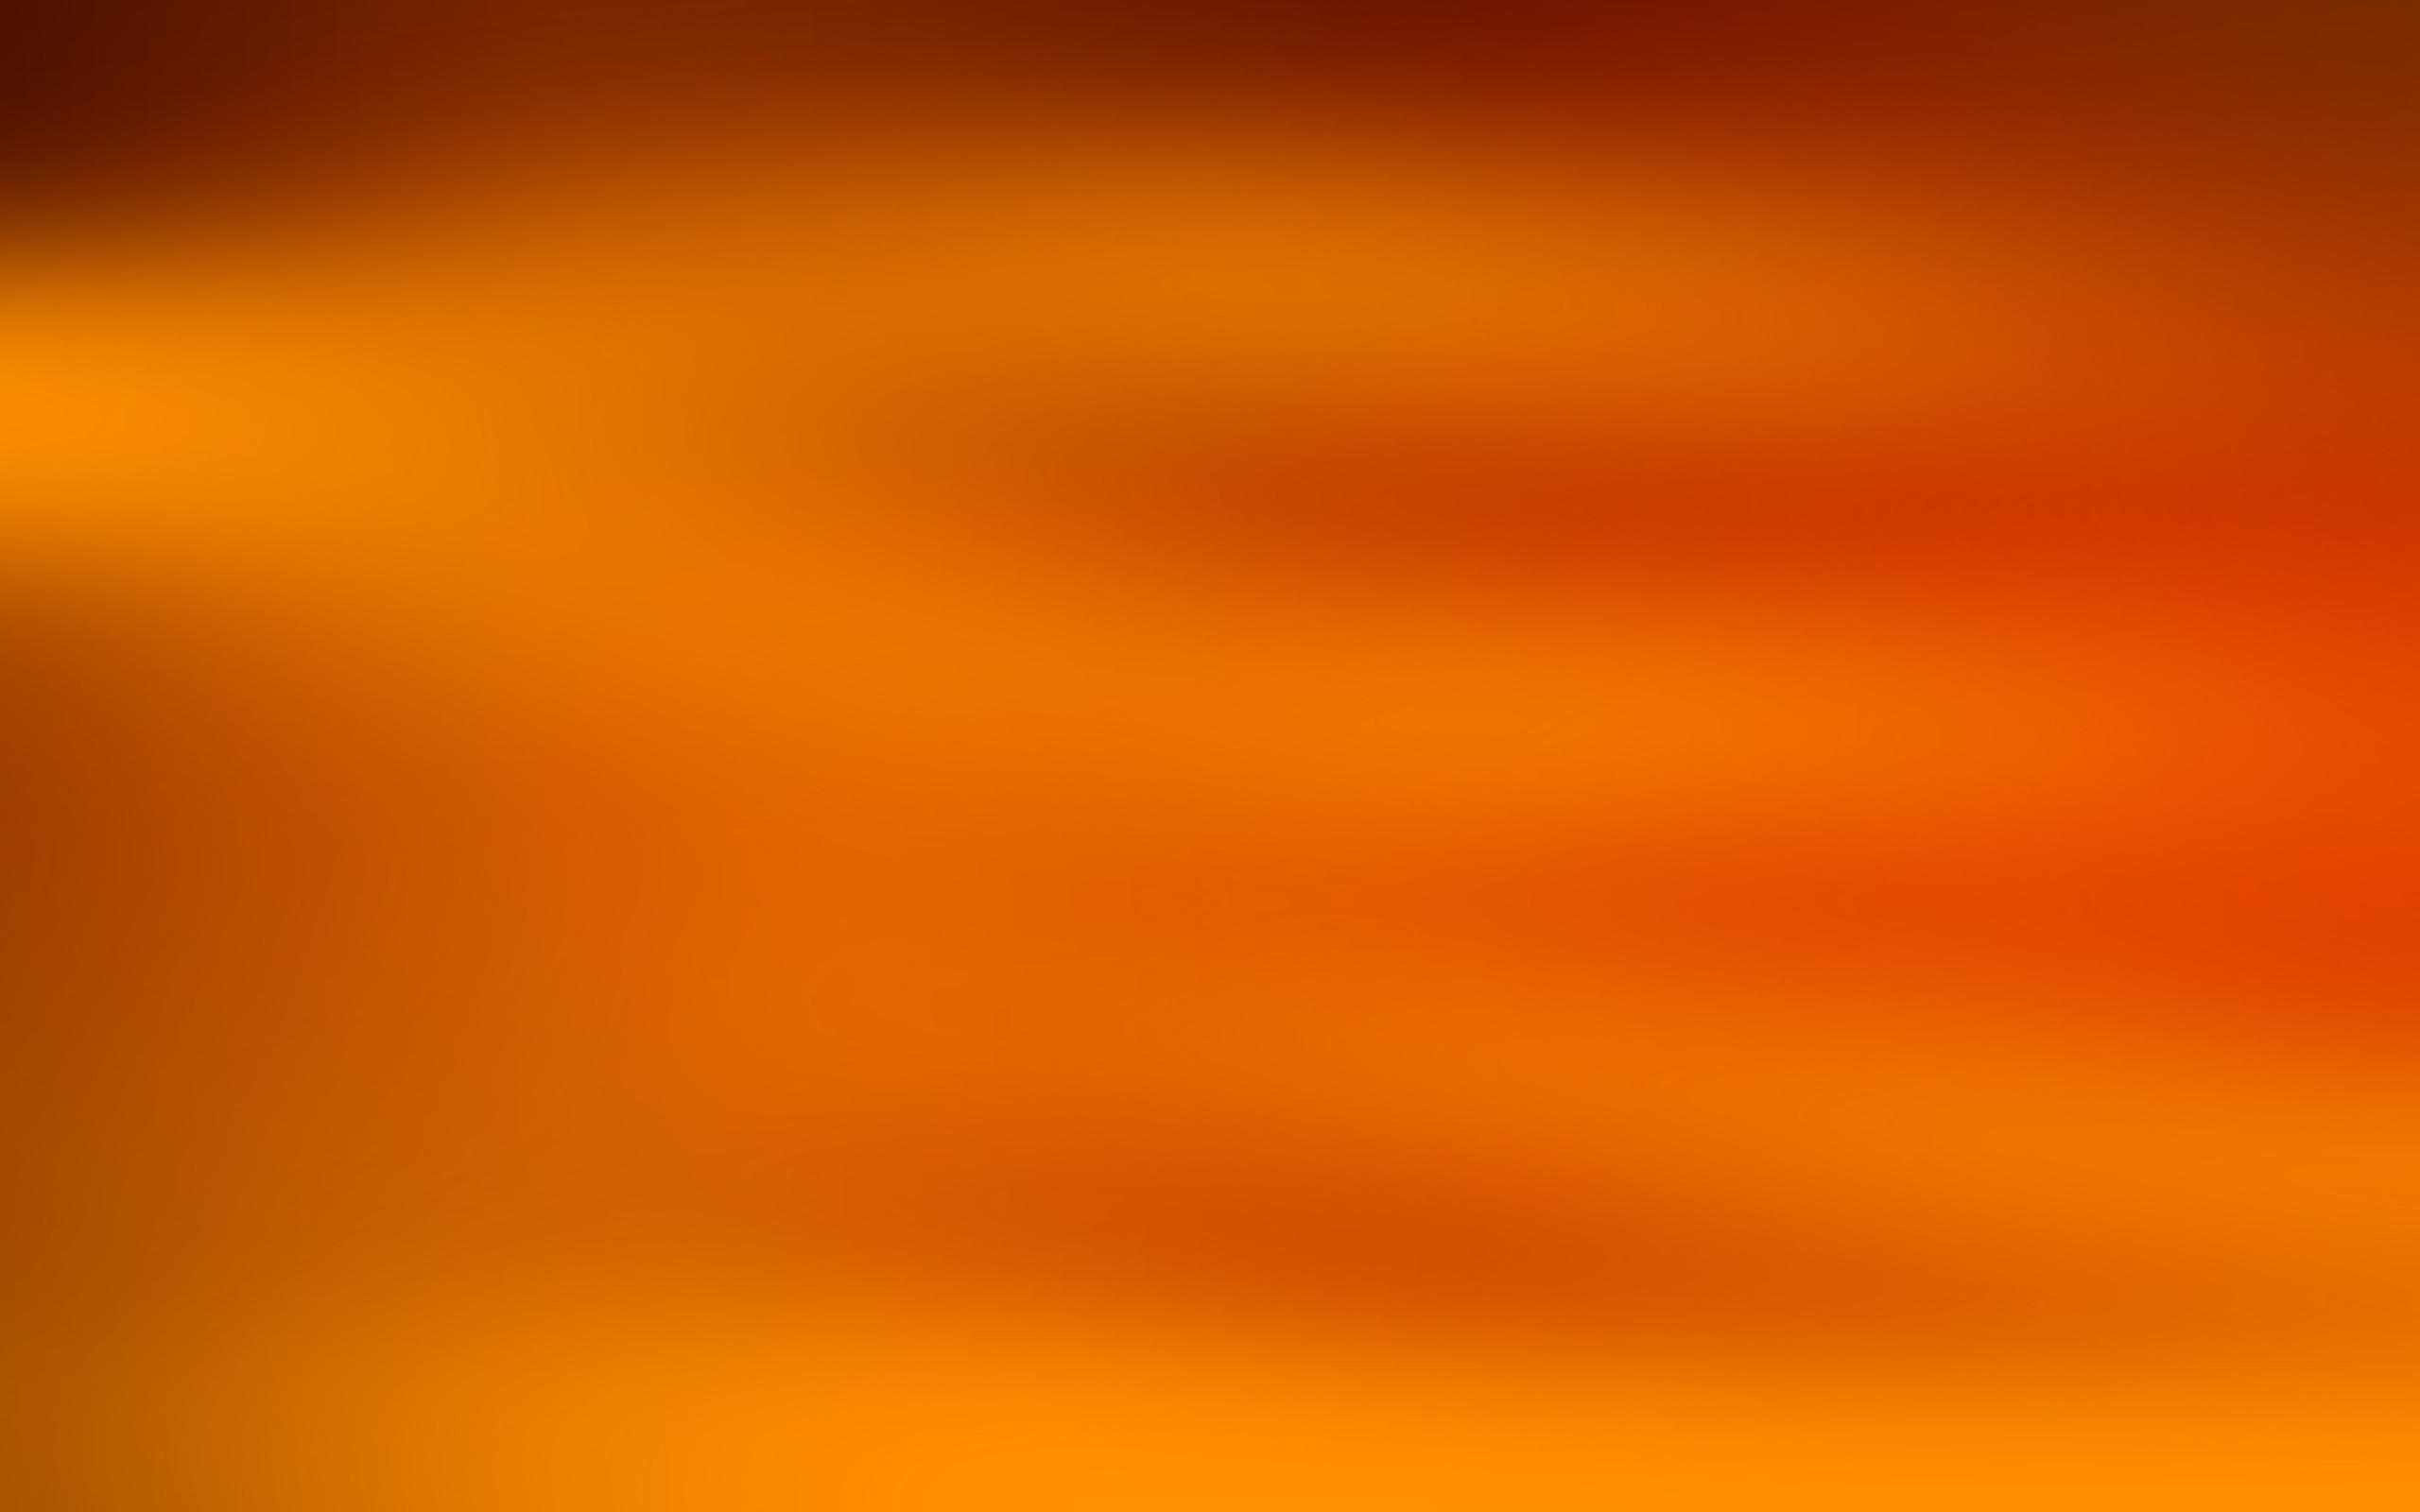 Orange Surface Wallpaper Hd